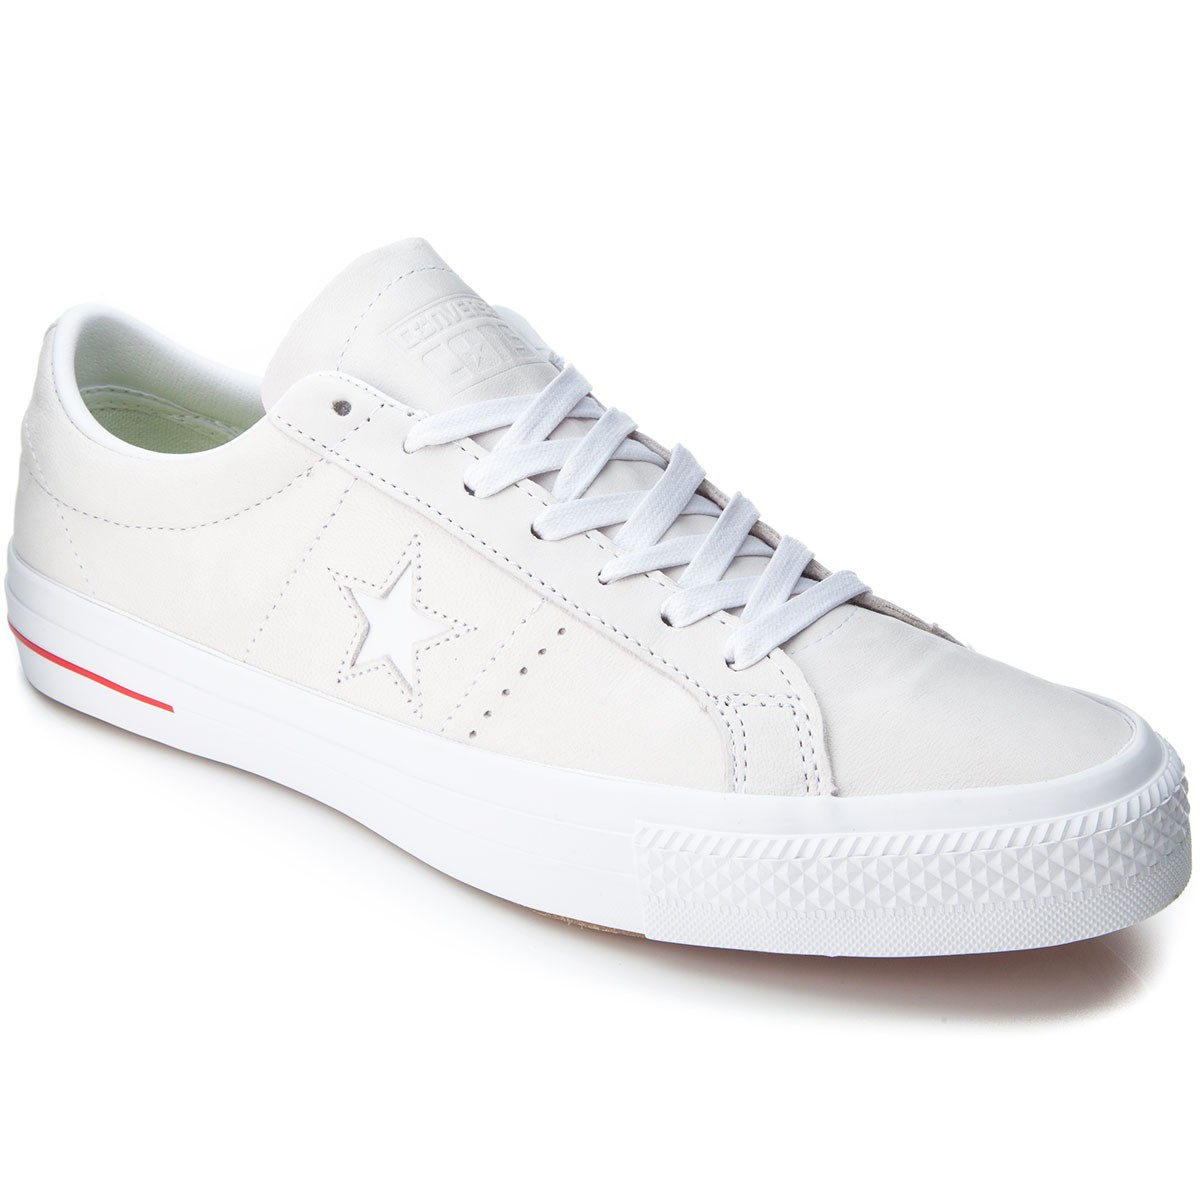 21db1b6a036e Converse One Star Pro Shoes - Nightime Navy Pink Freeze White - 10